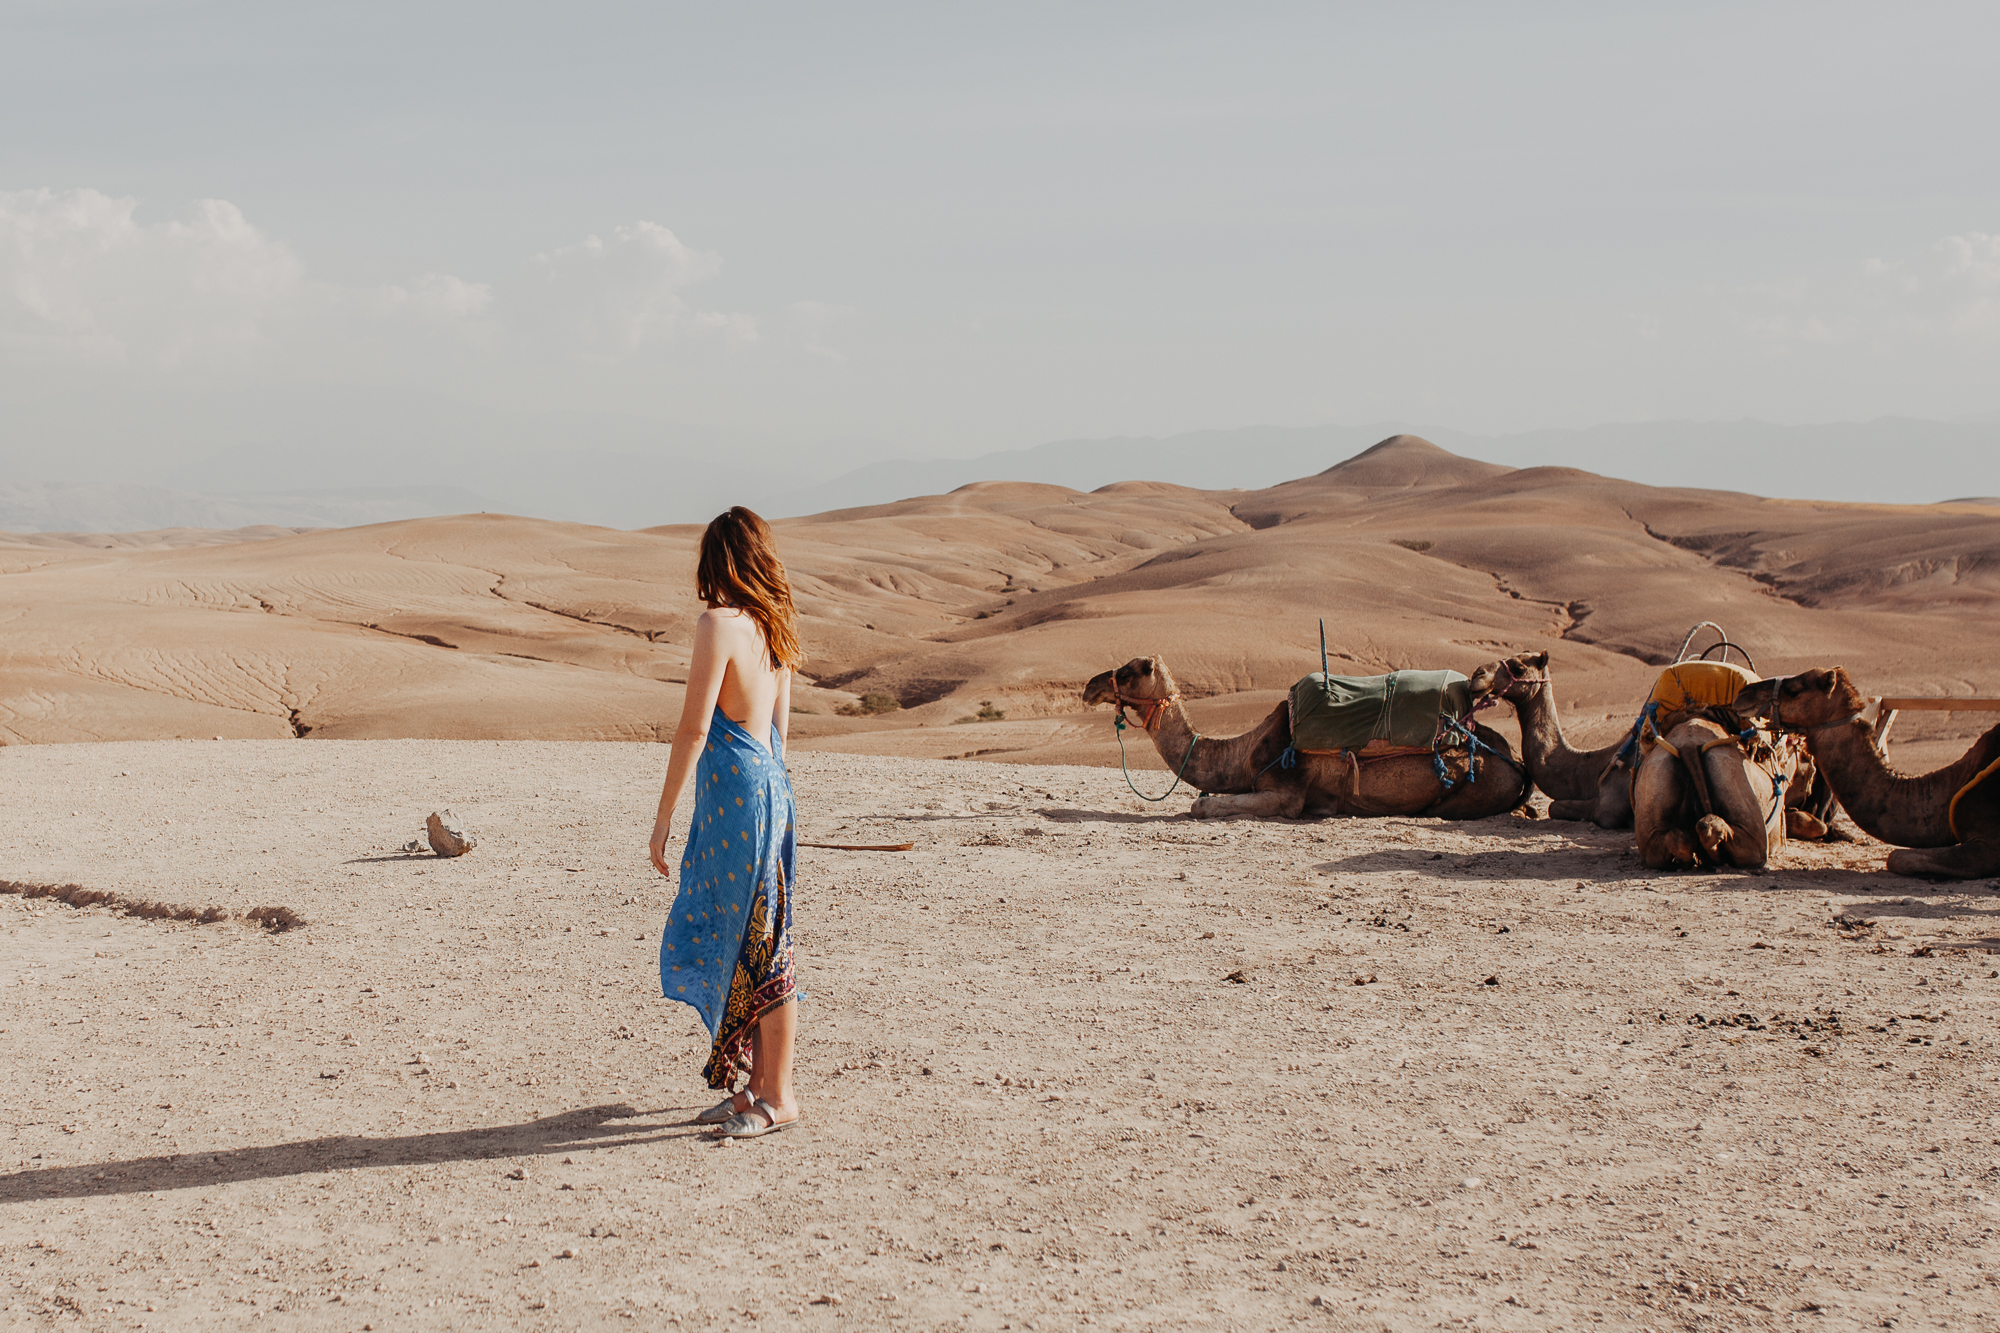 Meg with the camels in Morooco